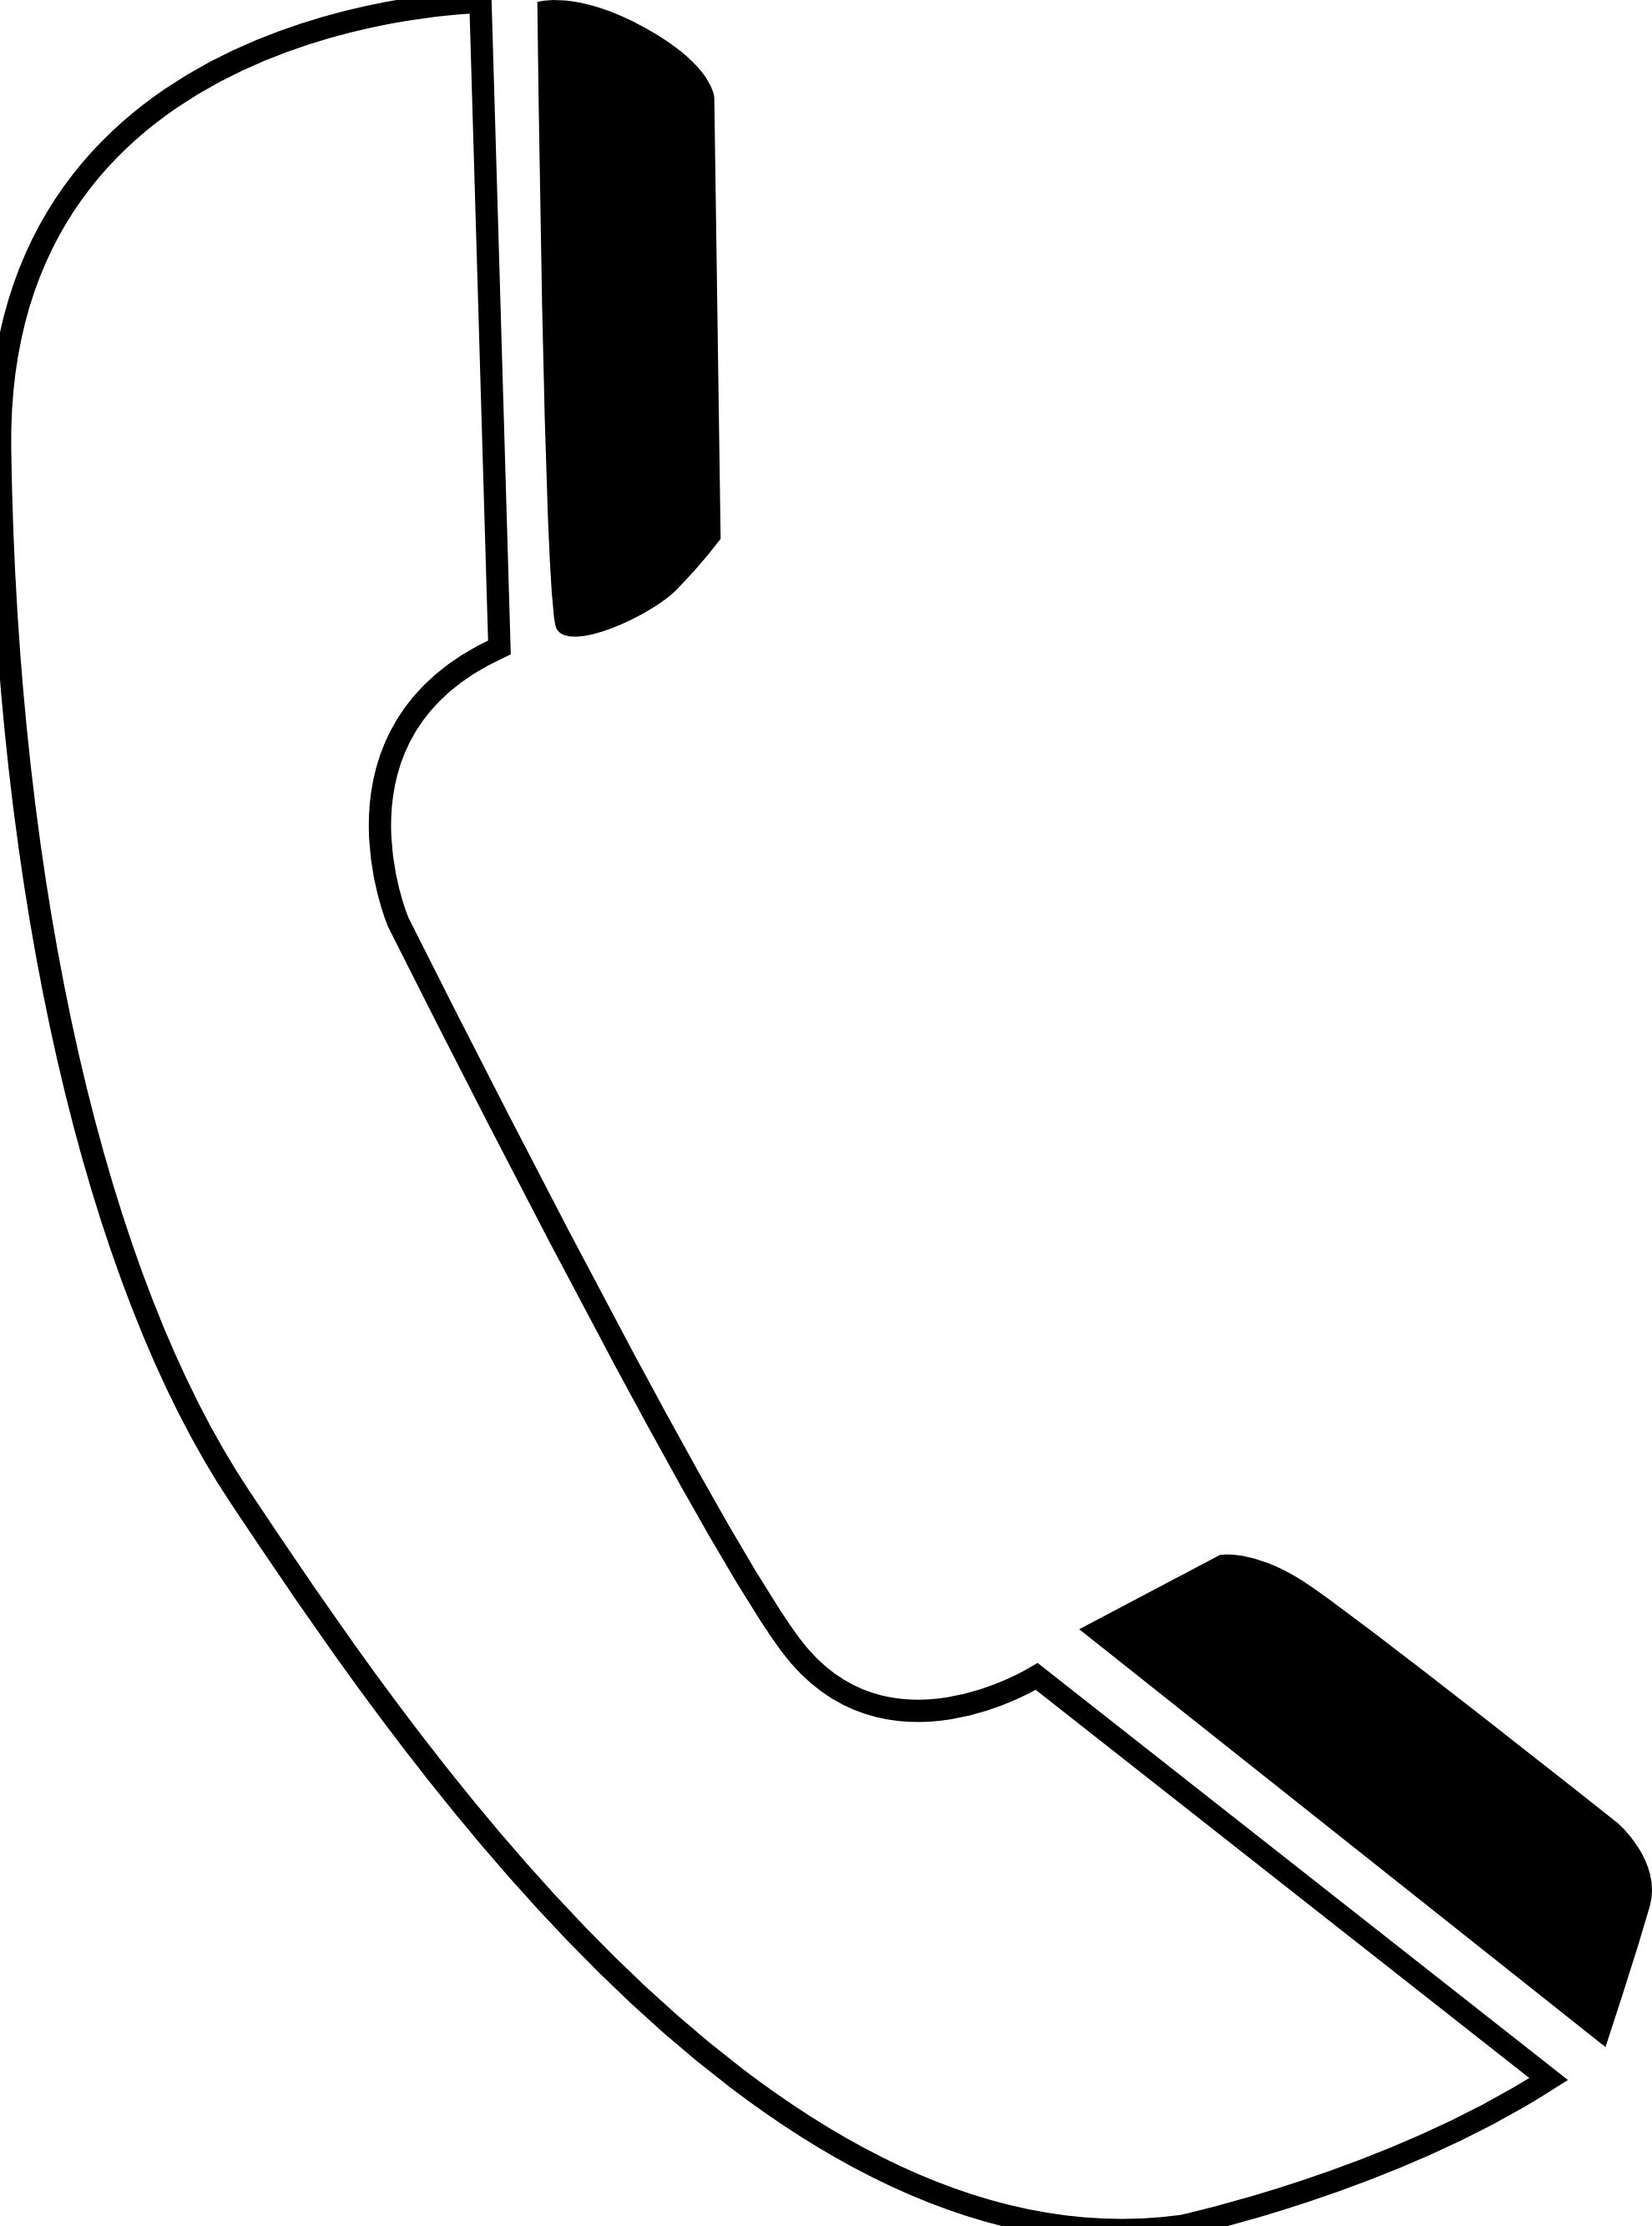 Telephone wires png. Phone icon